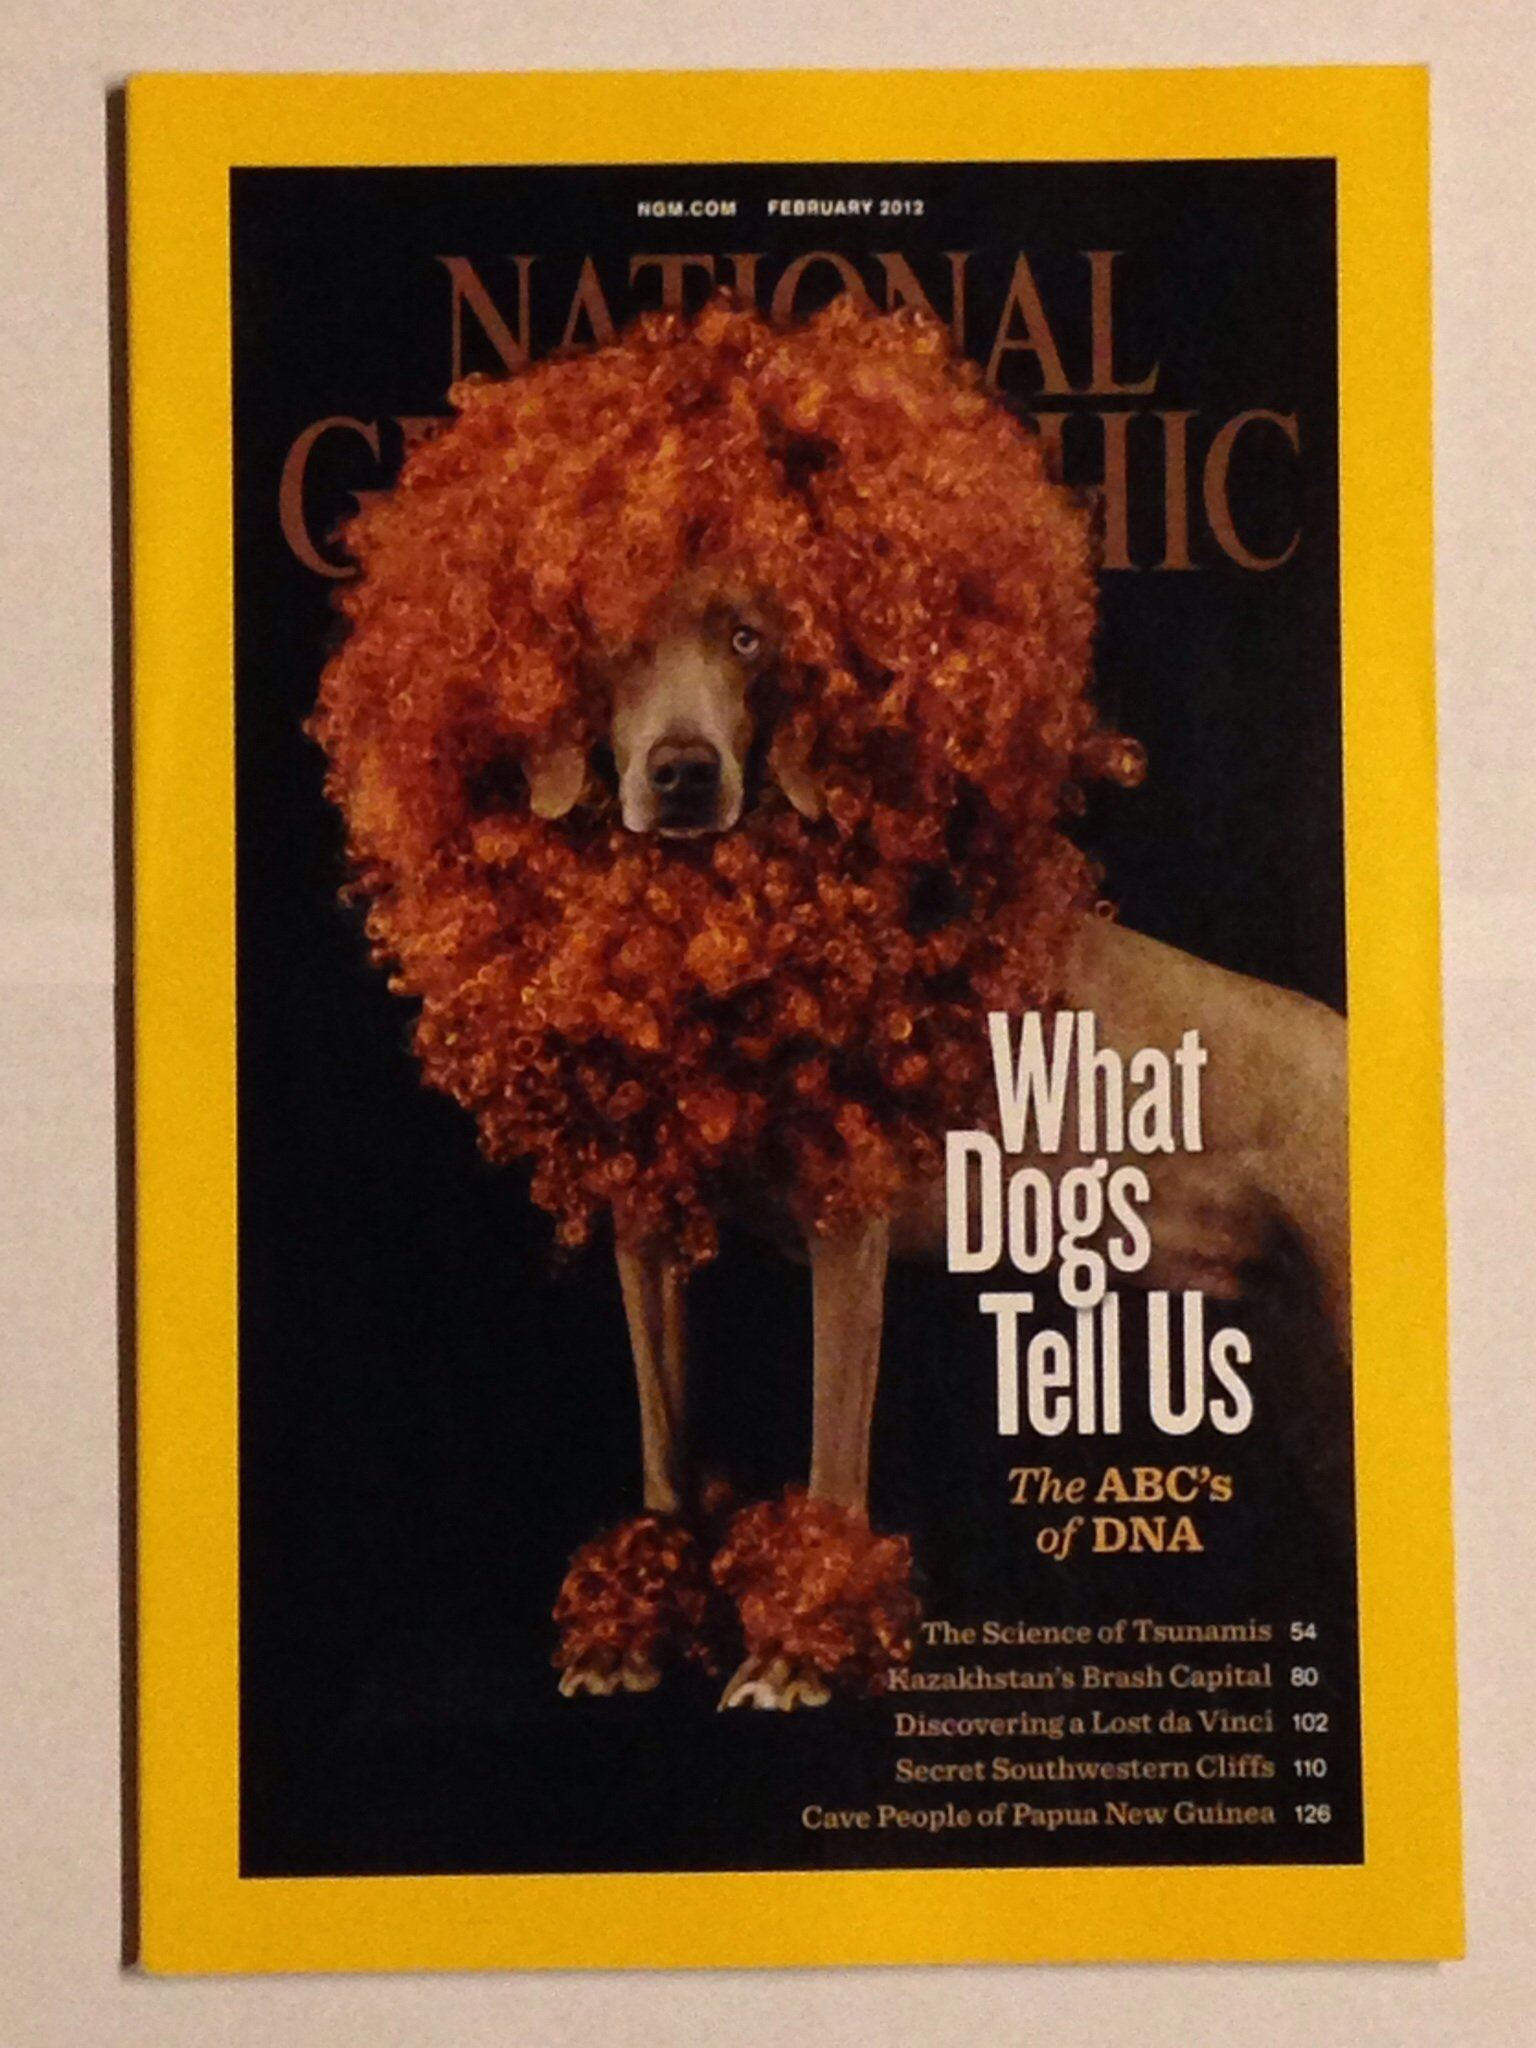 Download NATIONAL GEOGRAPHIC MAGAZINE FEBRUARY 2012 pdf